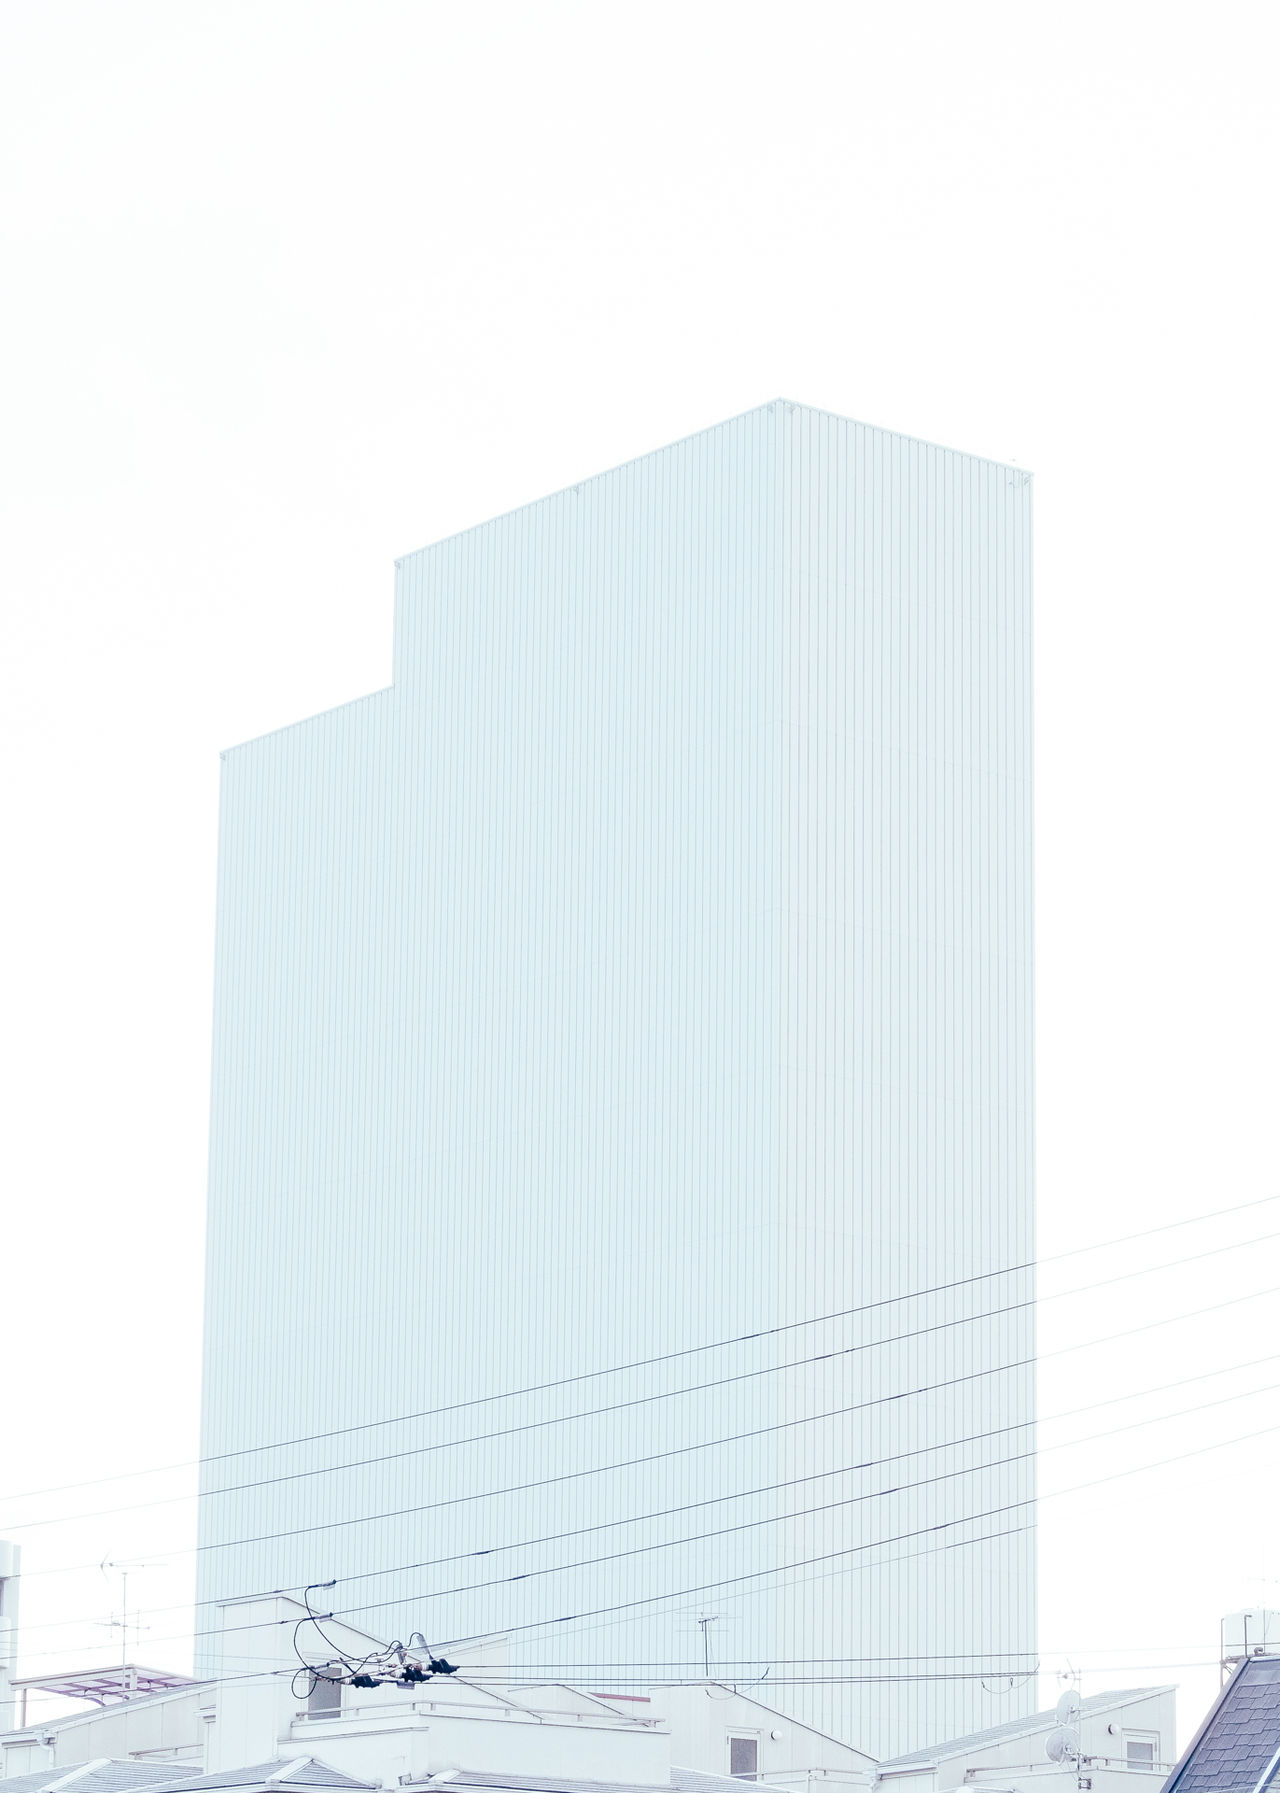 less decorative is the decoration Architecture building exterior built structure clean Clear sky day Eyeem architecture Japan minimal Minimalist Architecture minimalobsession no people outdoors simplicity sky urban landscape white white background